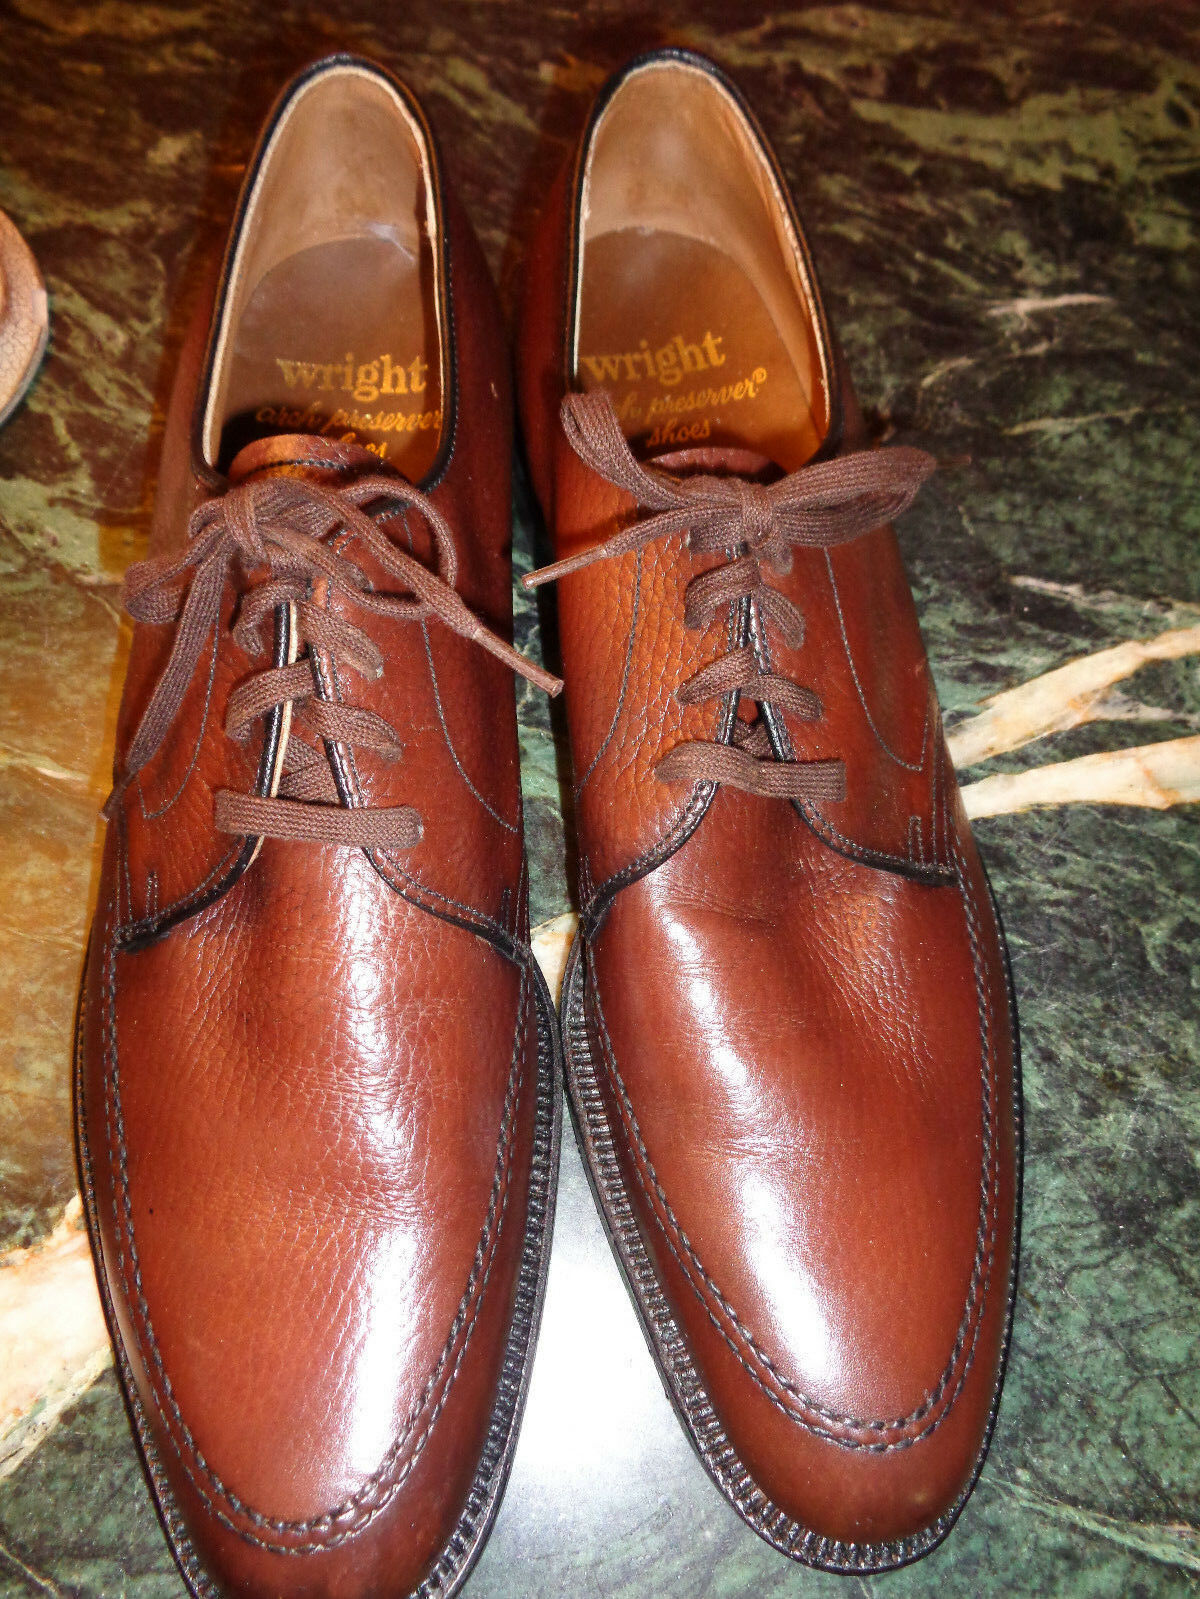 Uomo WRIGHT brown 9.5AAA pebbled leather oxfords  w/arch preservers  NEW NO box